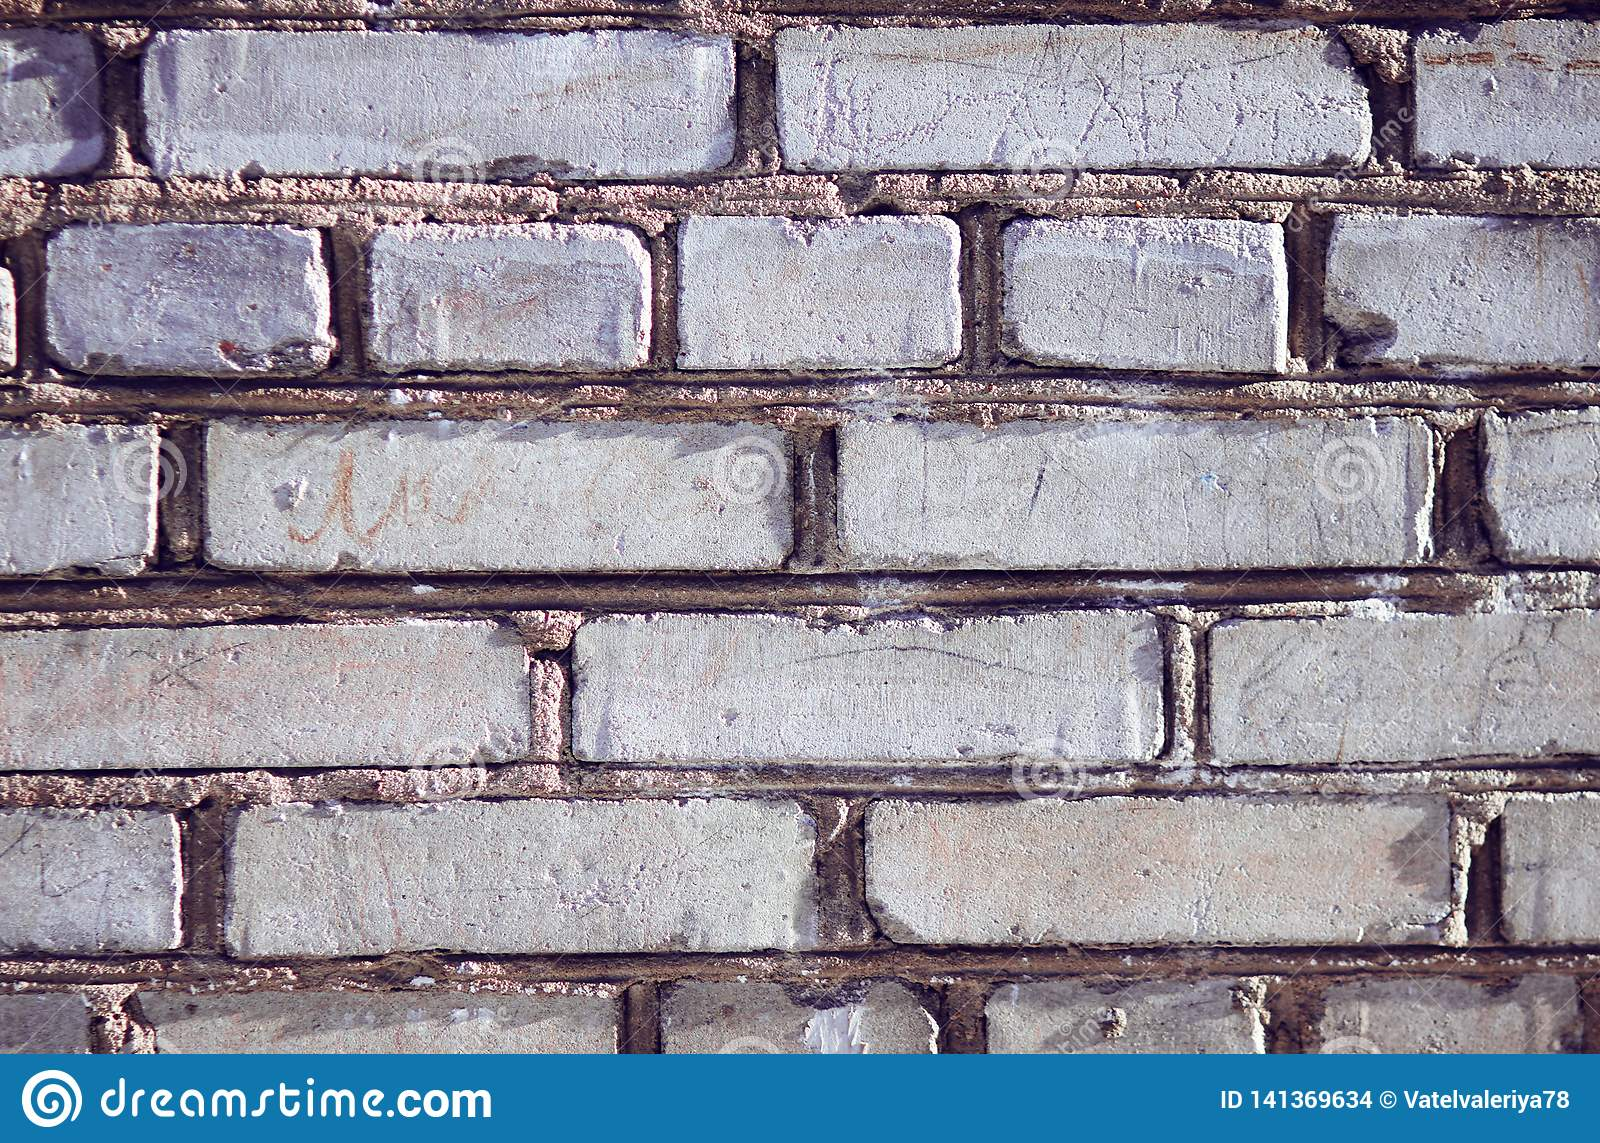 The gray wall of the building, built of rough uneven bricks